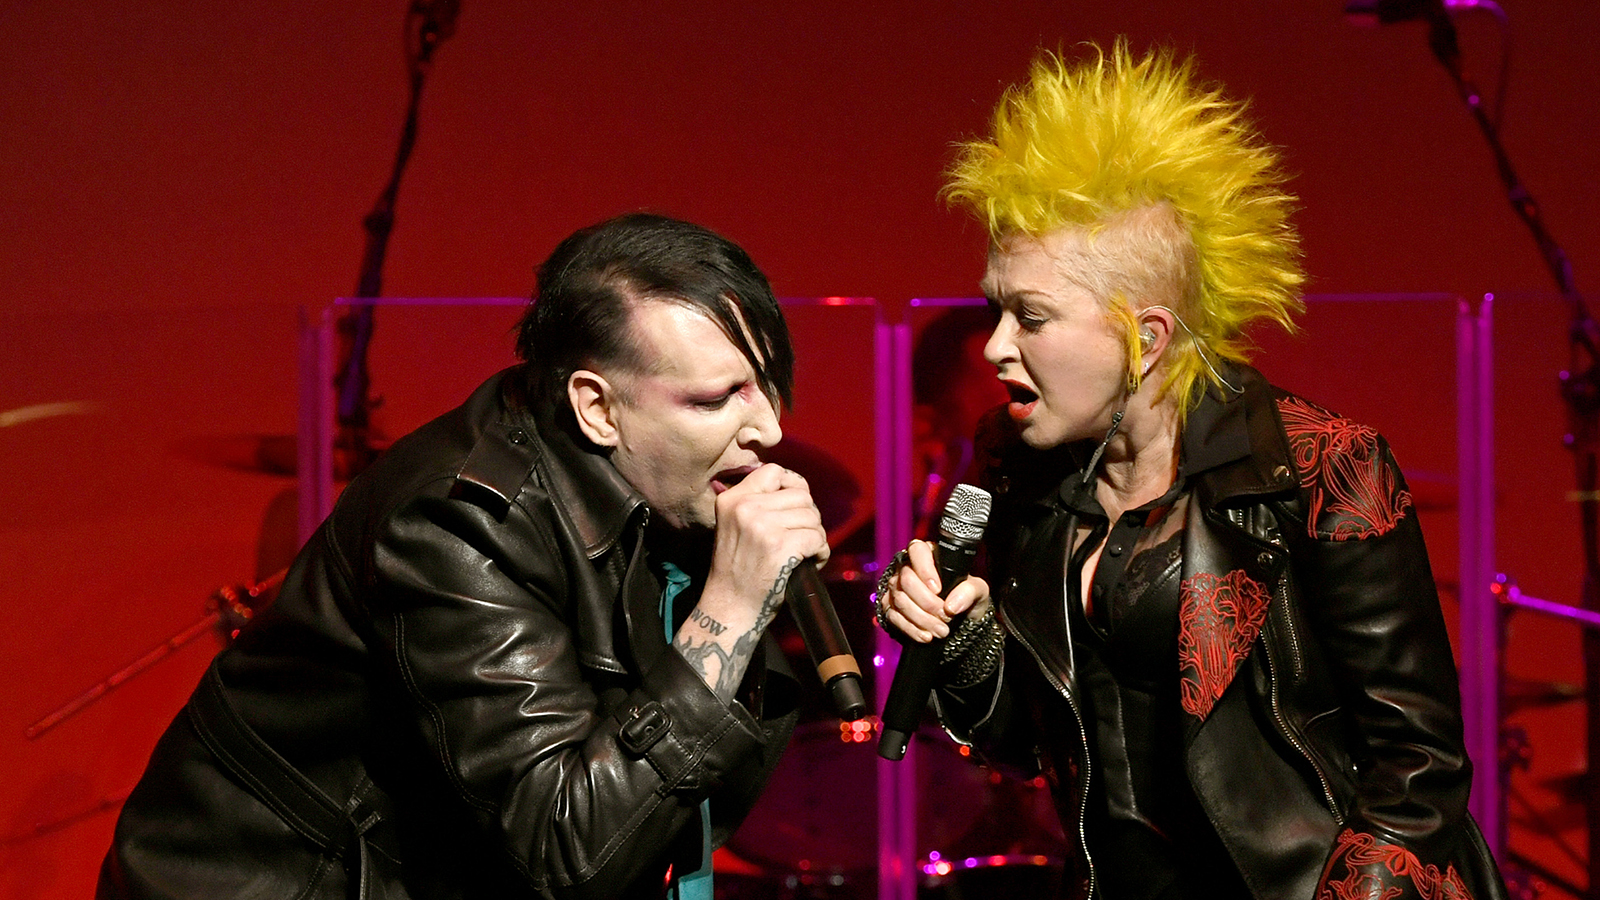 See Cyndi Lauper Duet With Marilyn Manson, Henry Rollins at Benefit Gig